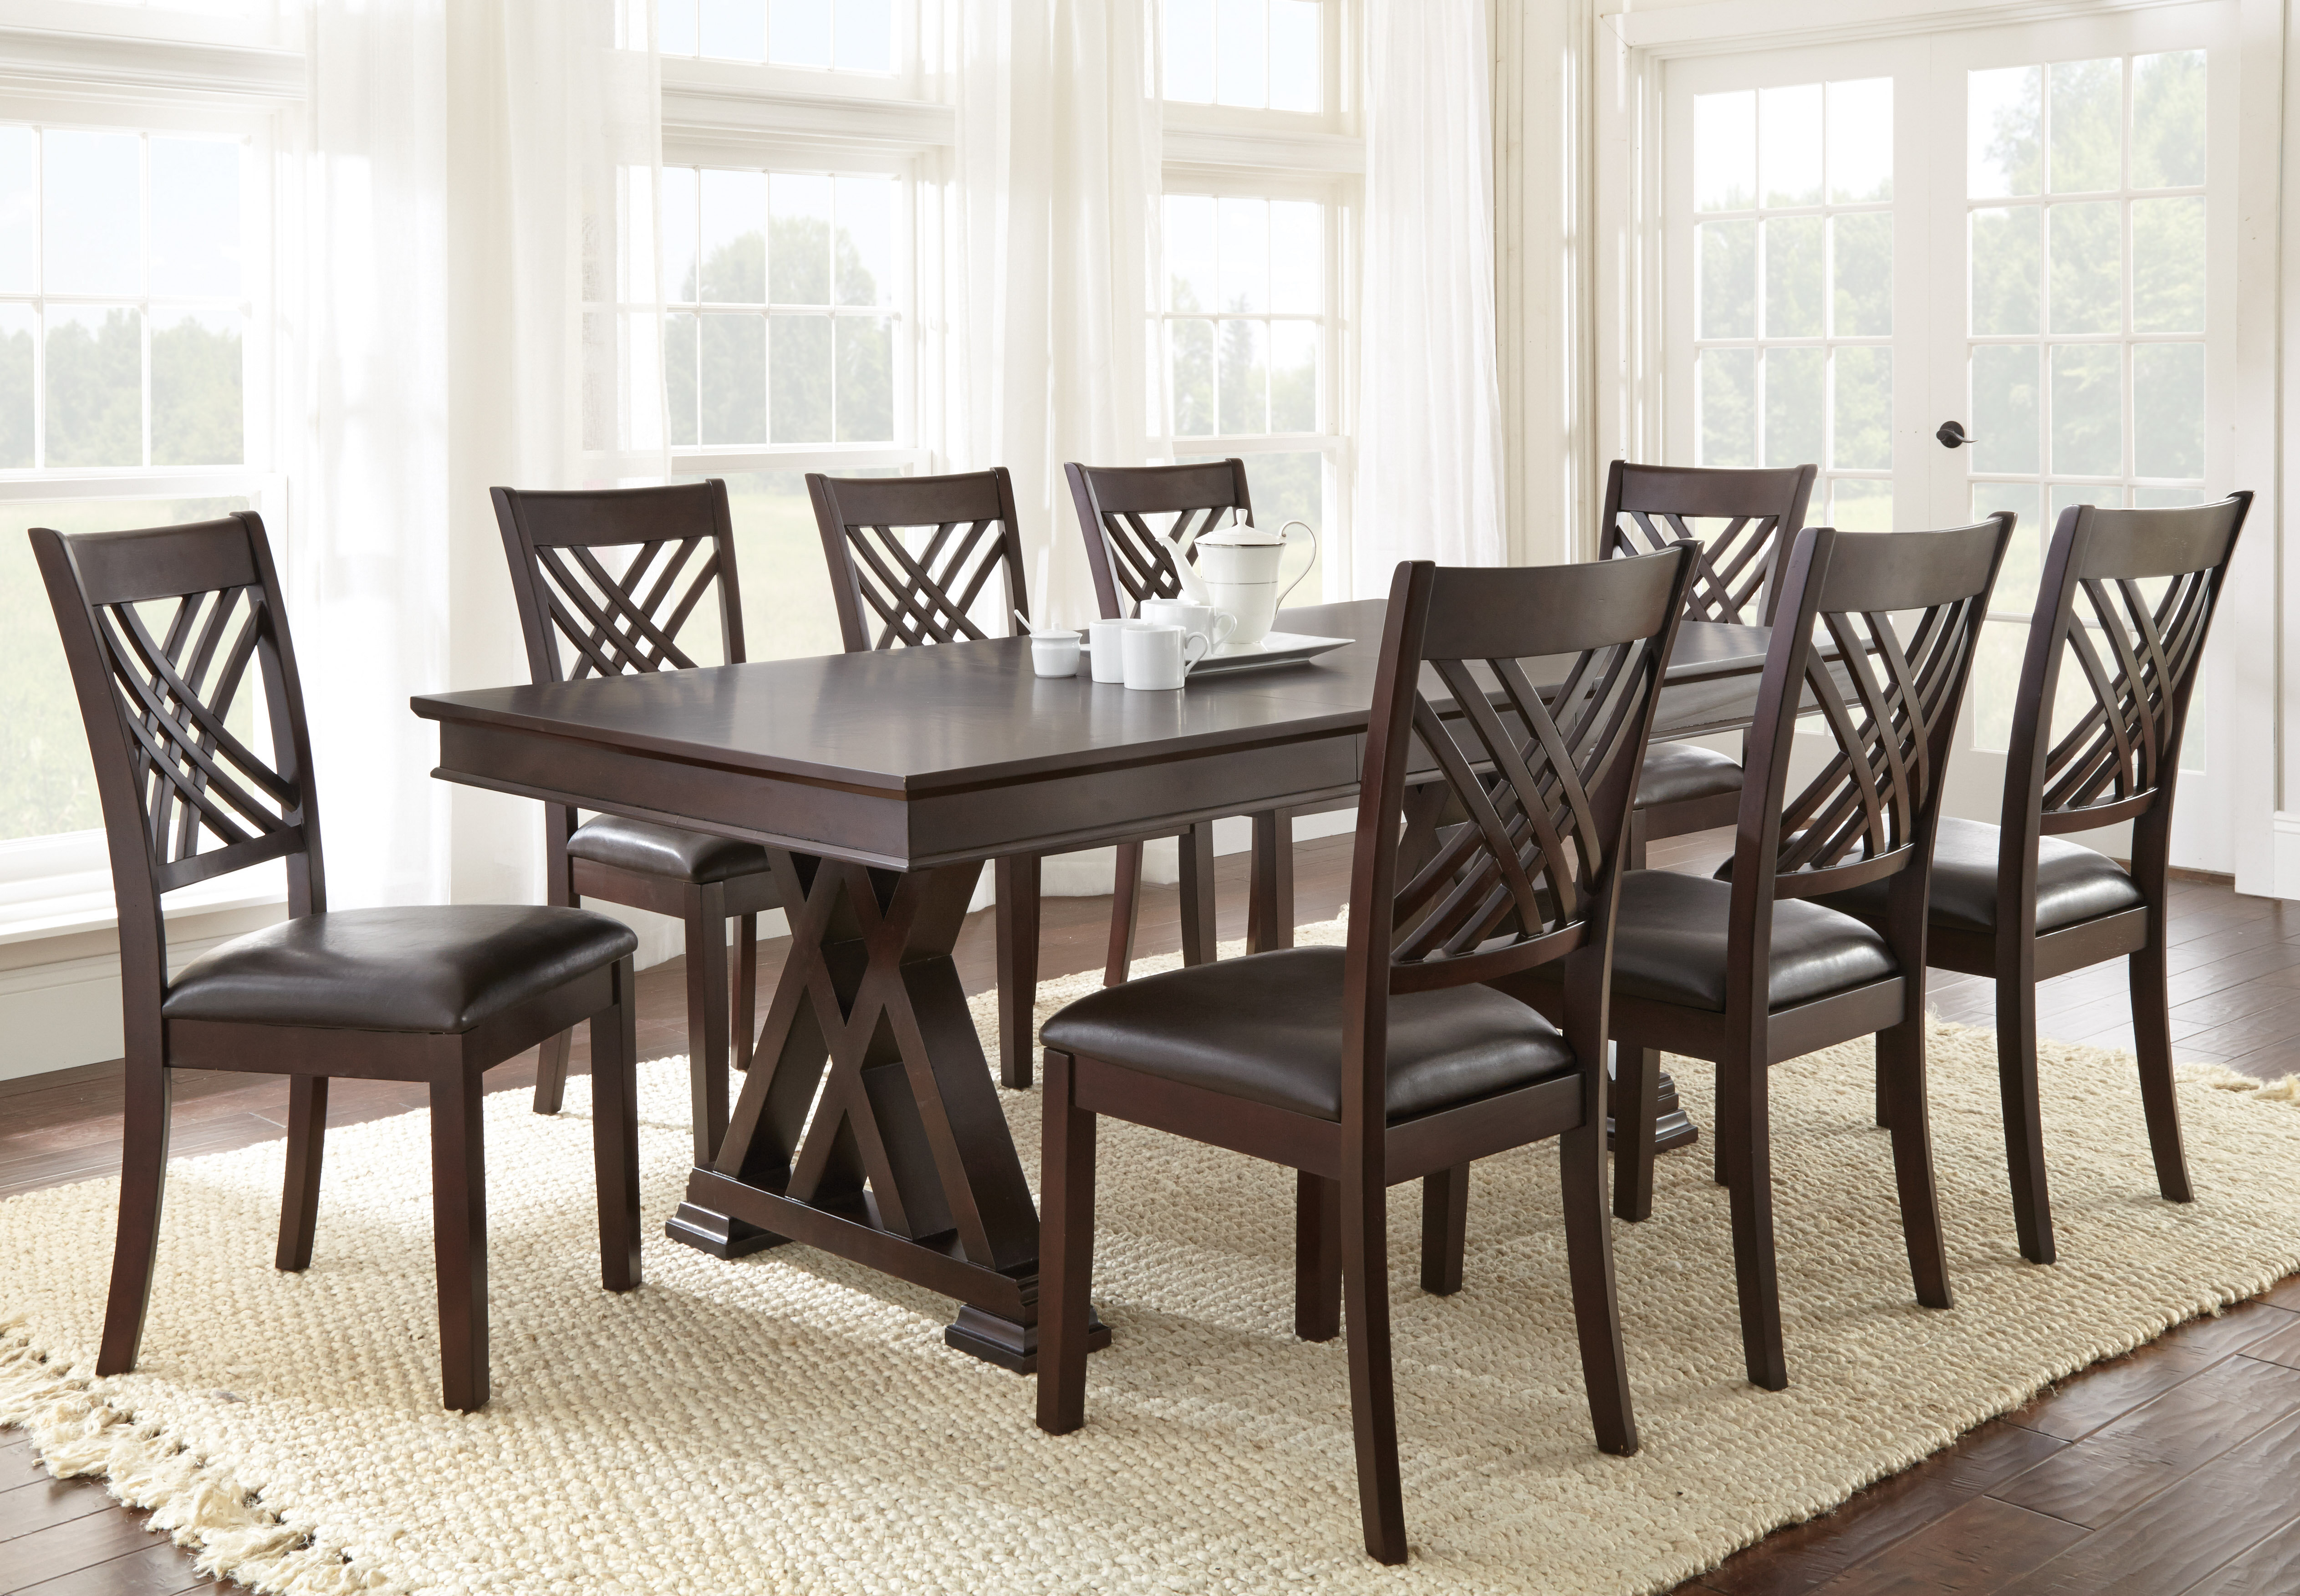 Dining Table With Chair Kitchen Dining Room Sets You Ll Love In 2021 Wayfair